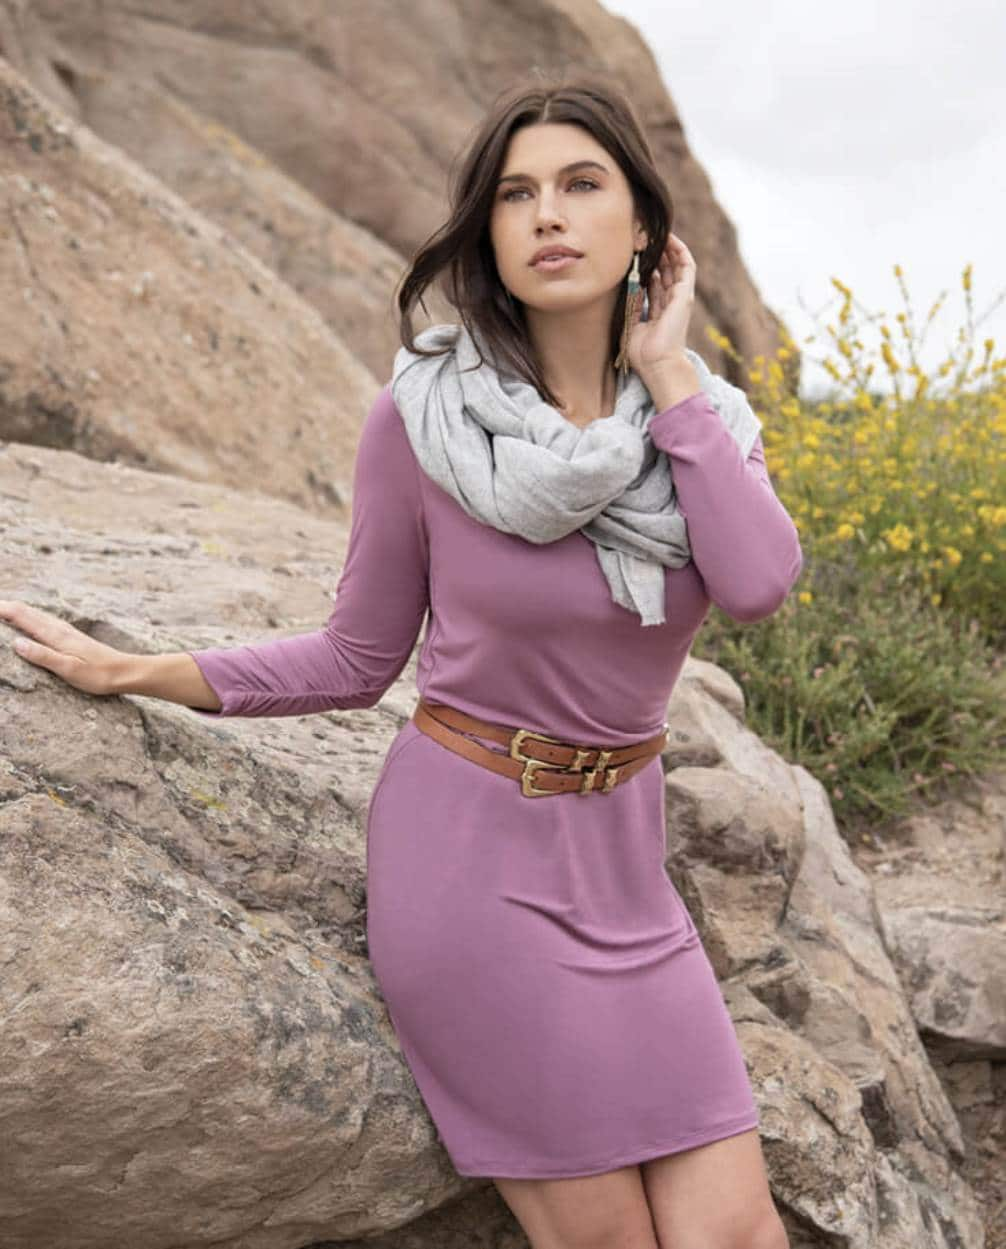 Here's our list of ethically made fair trade dresses for every eco-cassion Image by Synergy Organic Clothing #sustainablefashion #fairtrade #ethicallymade